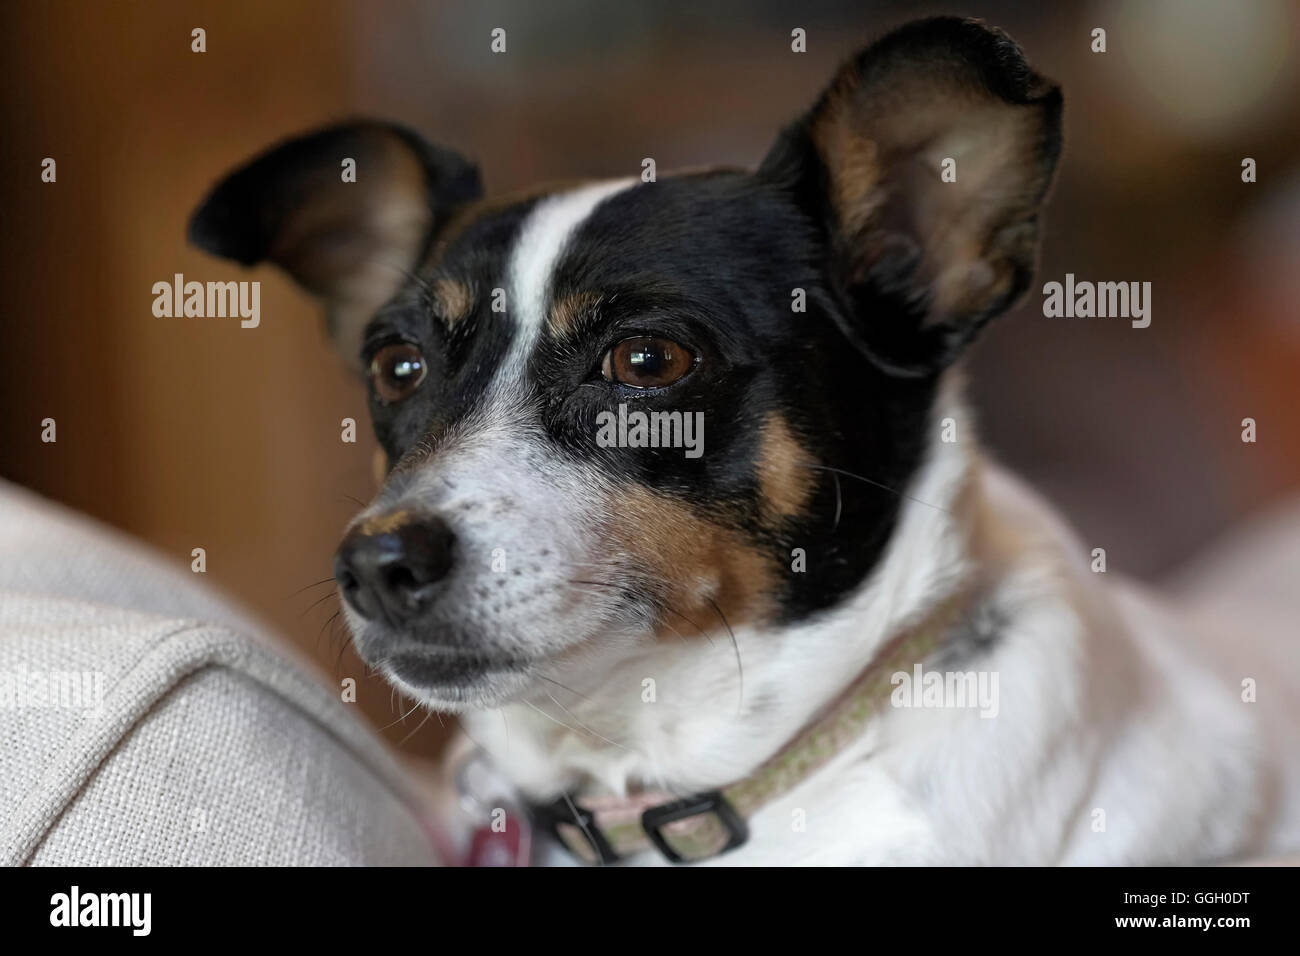 Terrier dog on sofa looking out window. Chien Noir et blanc. Photo Stock